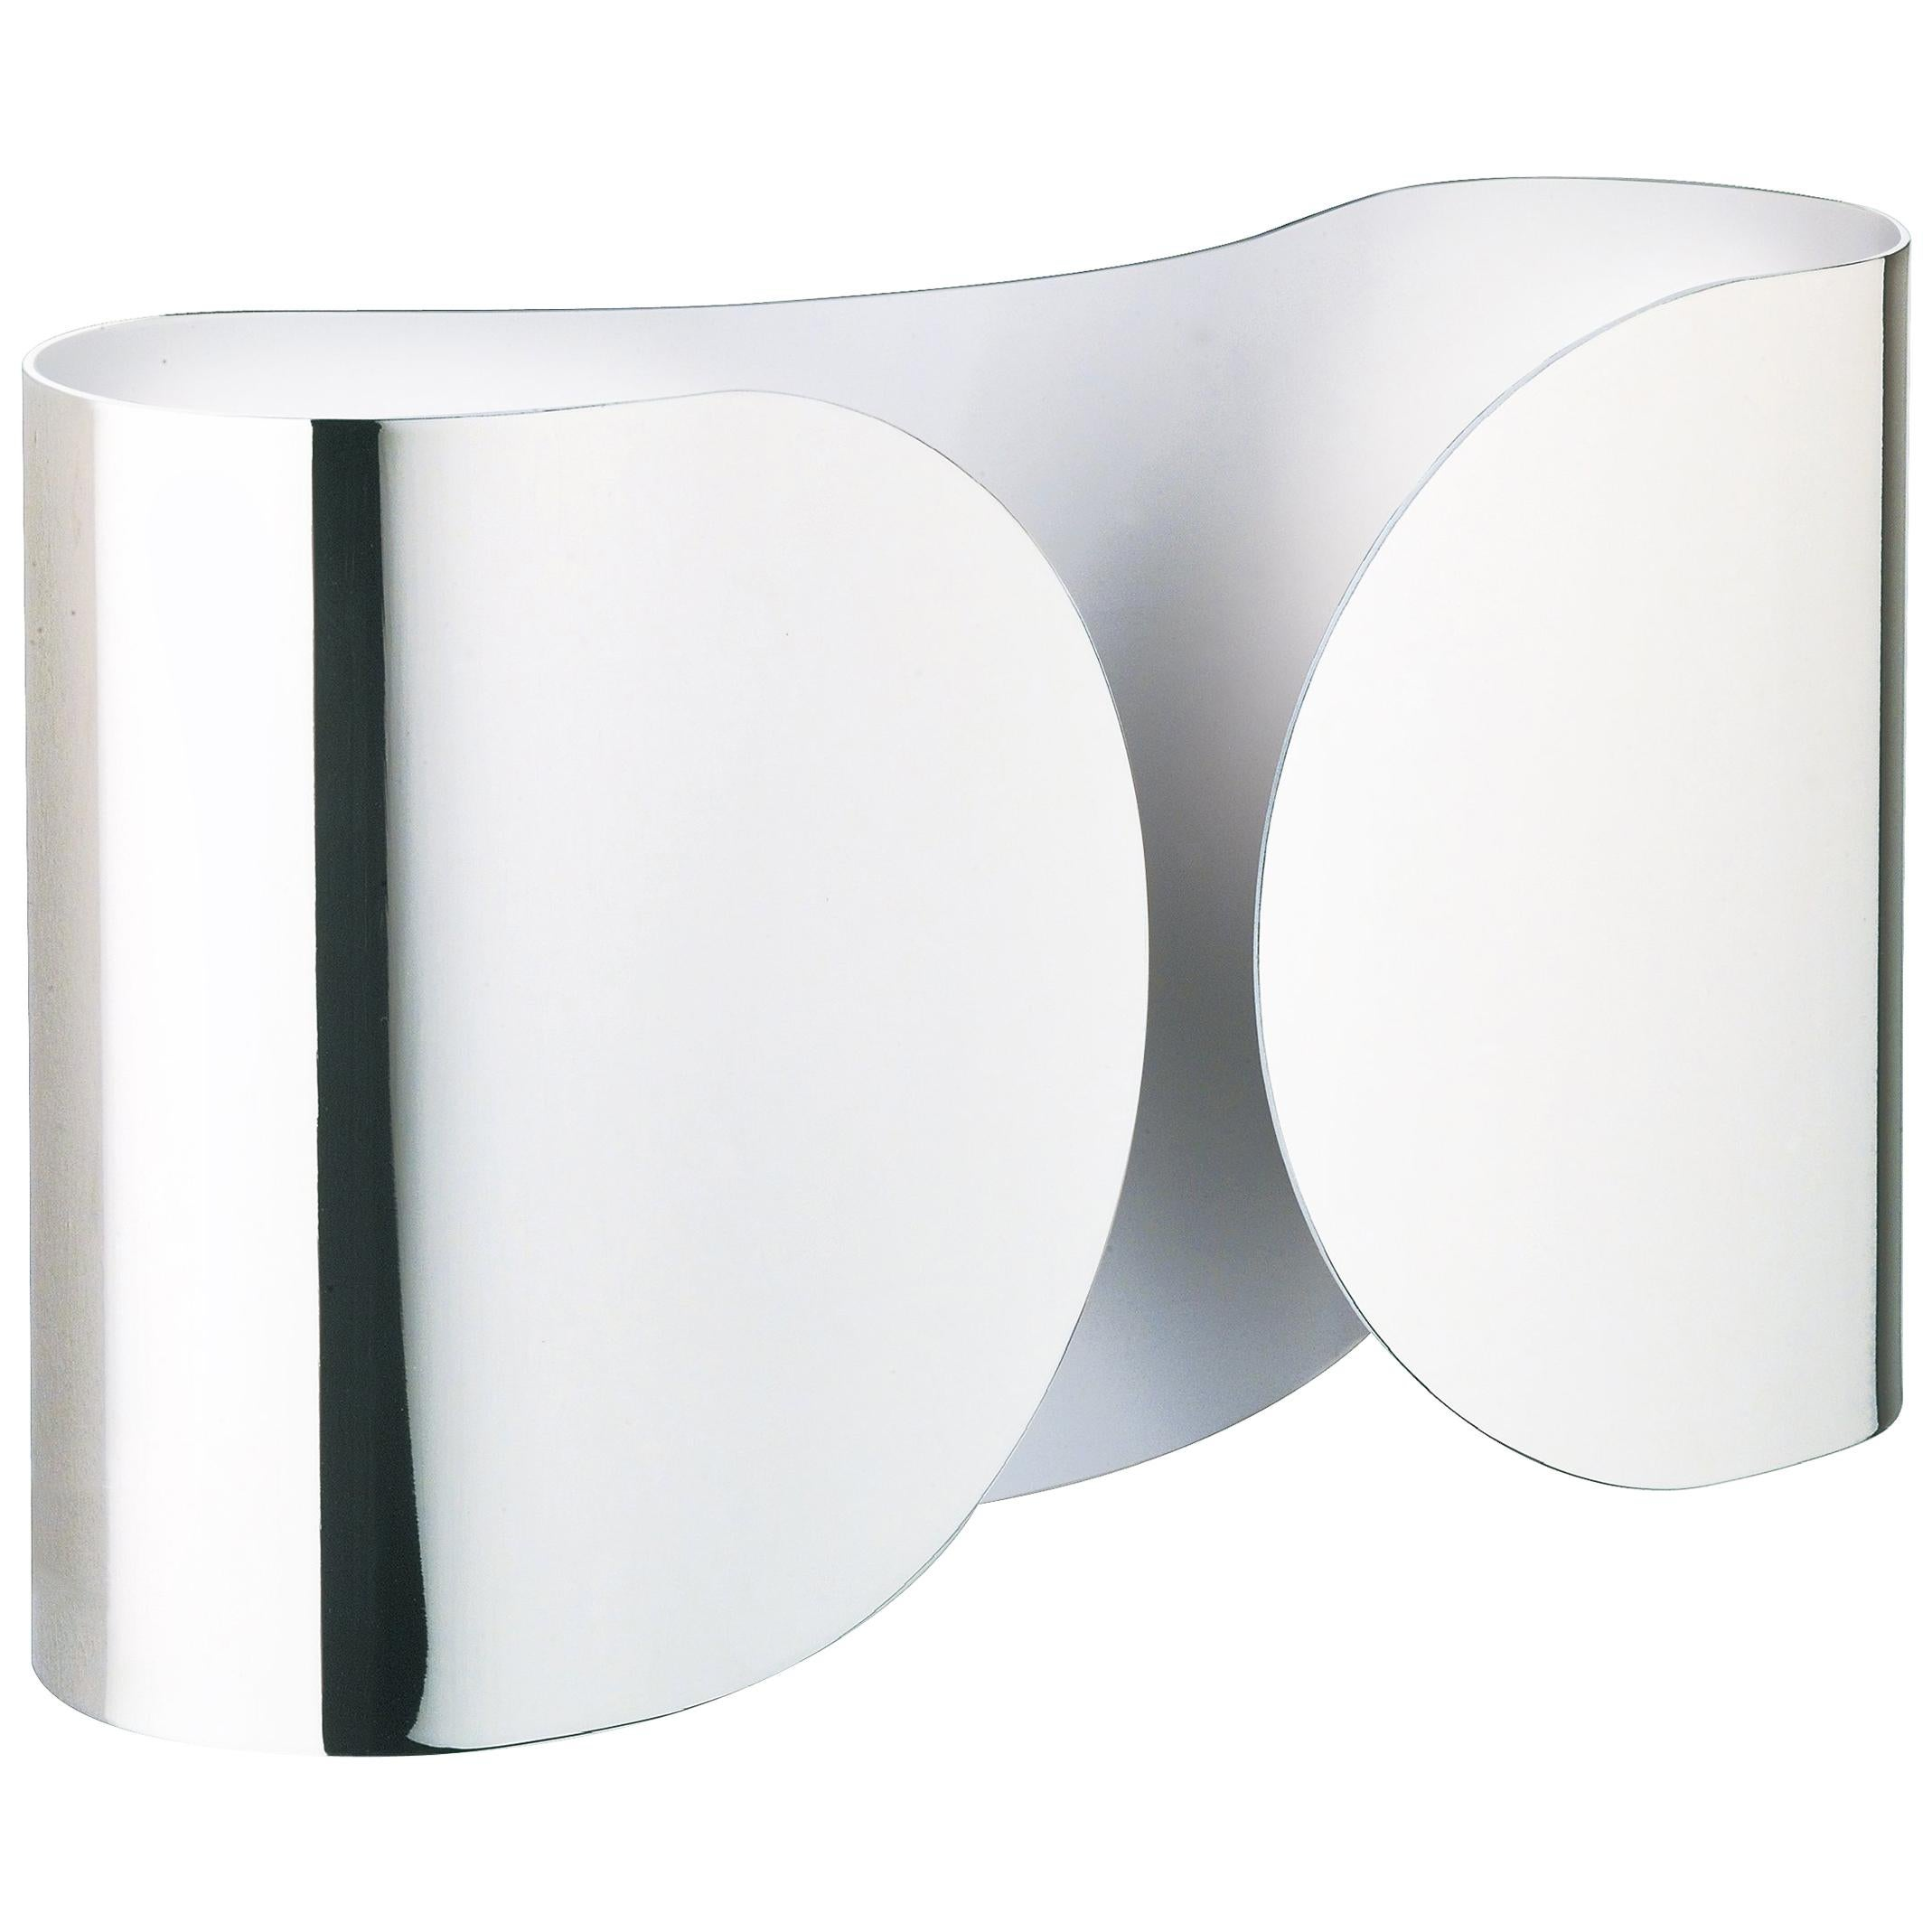 FLOS Foglio Light in Chrome by Tobia Scarpa